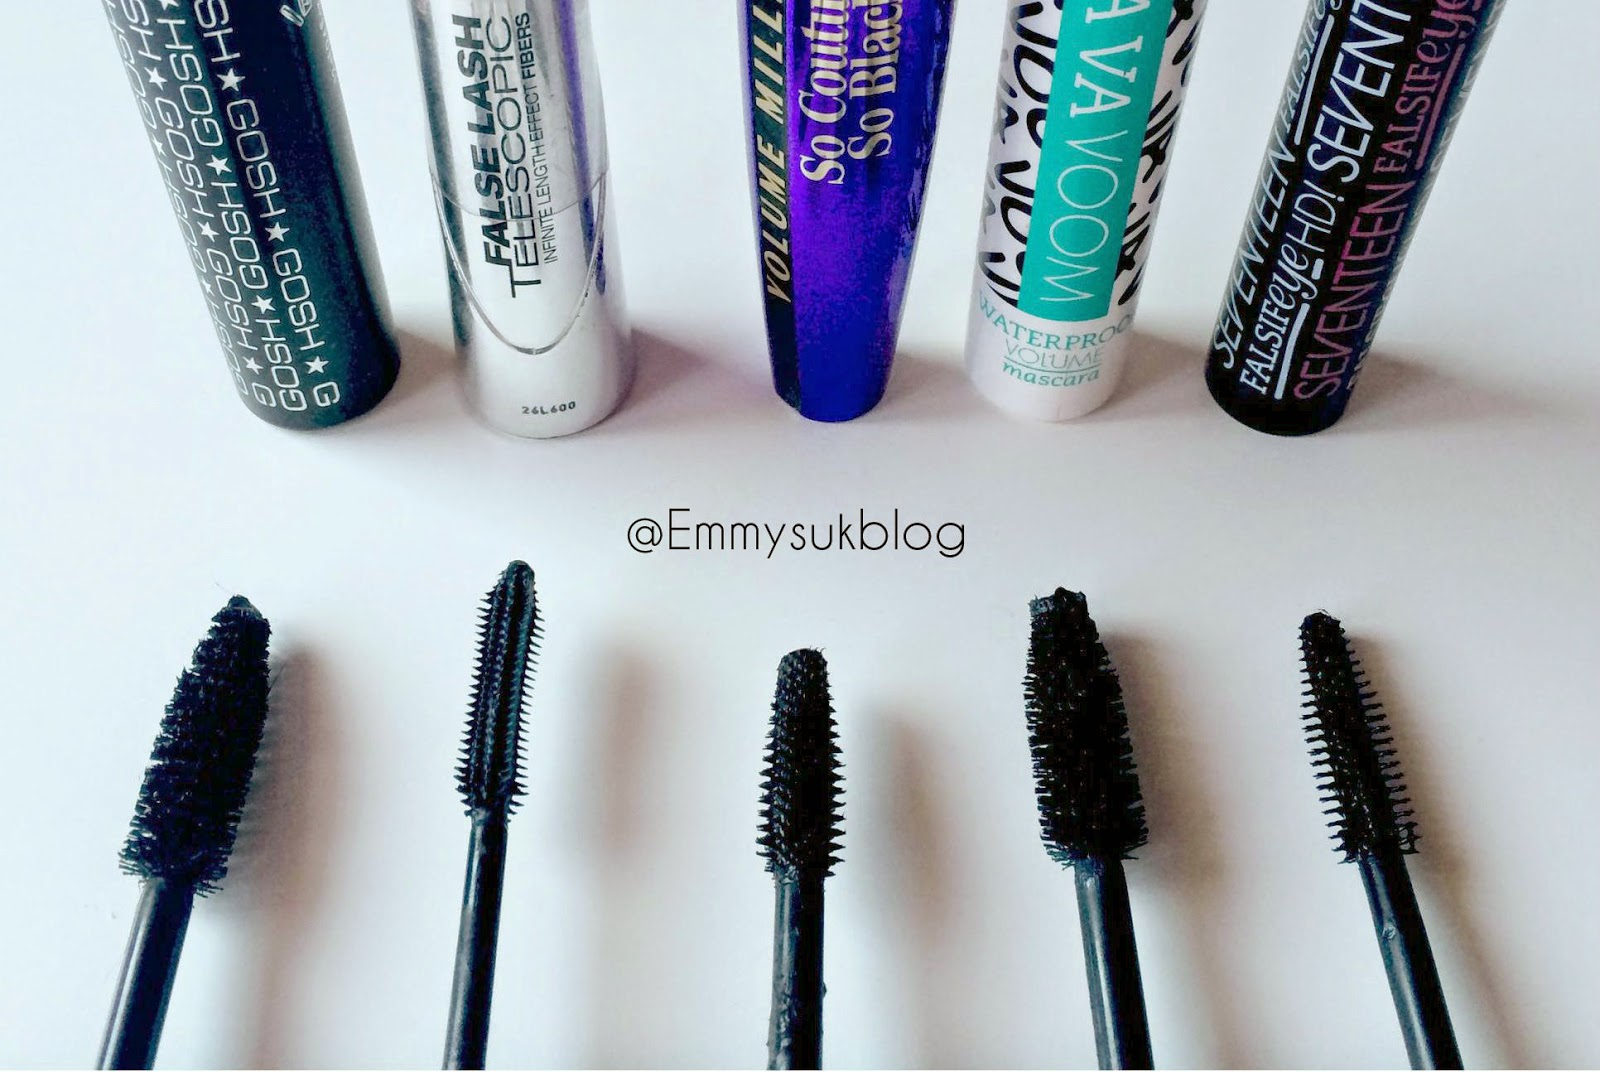 Top 5 Mascara's For Short Eye Lashes